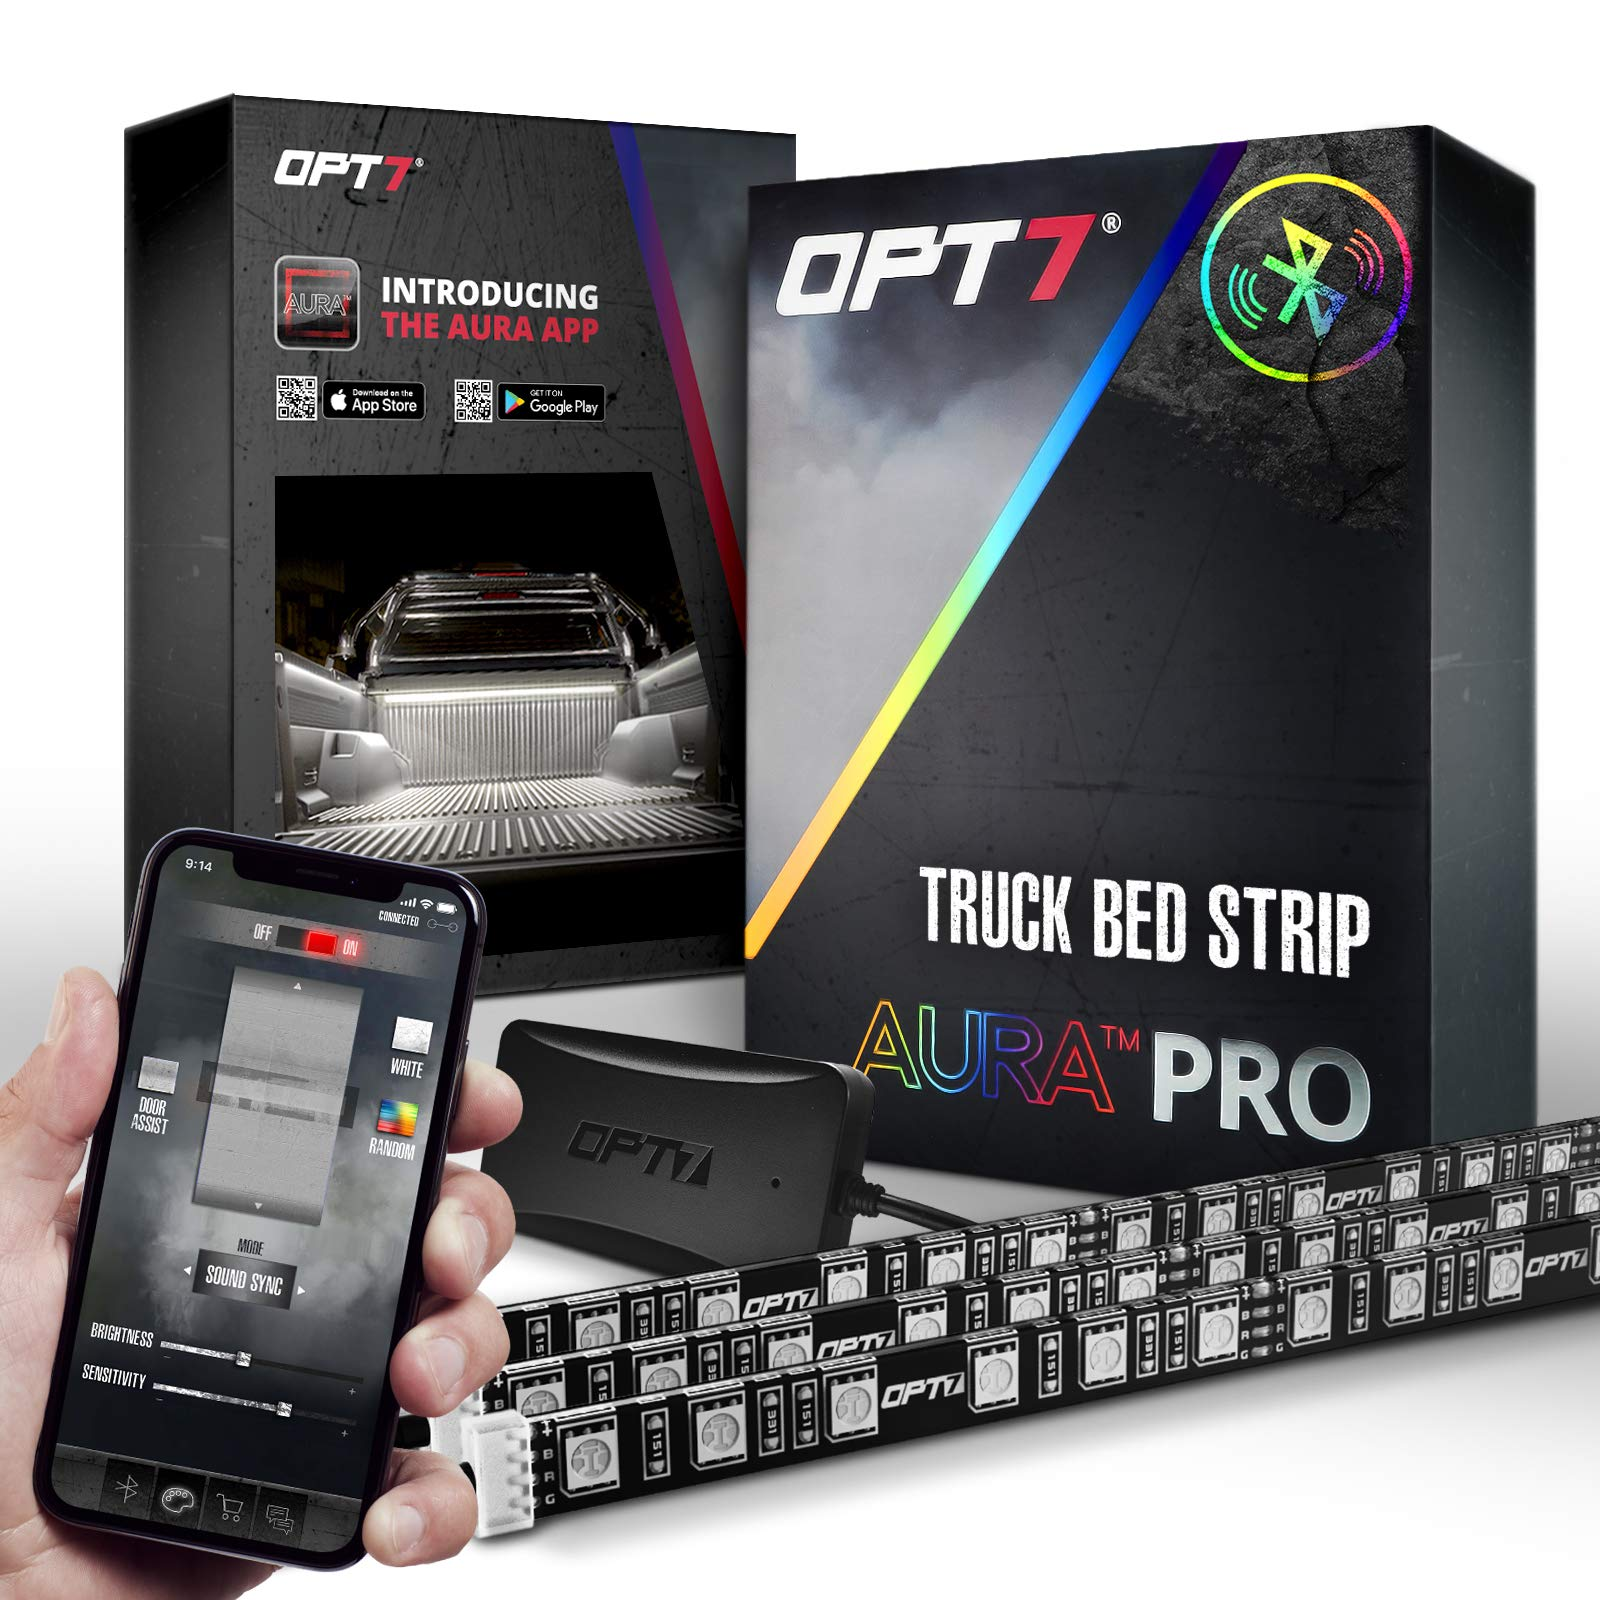 OPT7 Aura PRO Wireless Bluetooth 3pc Truck Bed LED Lighting Strip Kit -OE-Style Rocker Switch - Sound Activated Multi Color Lights - 1 Yr Warranty- iOS & Android